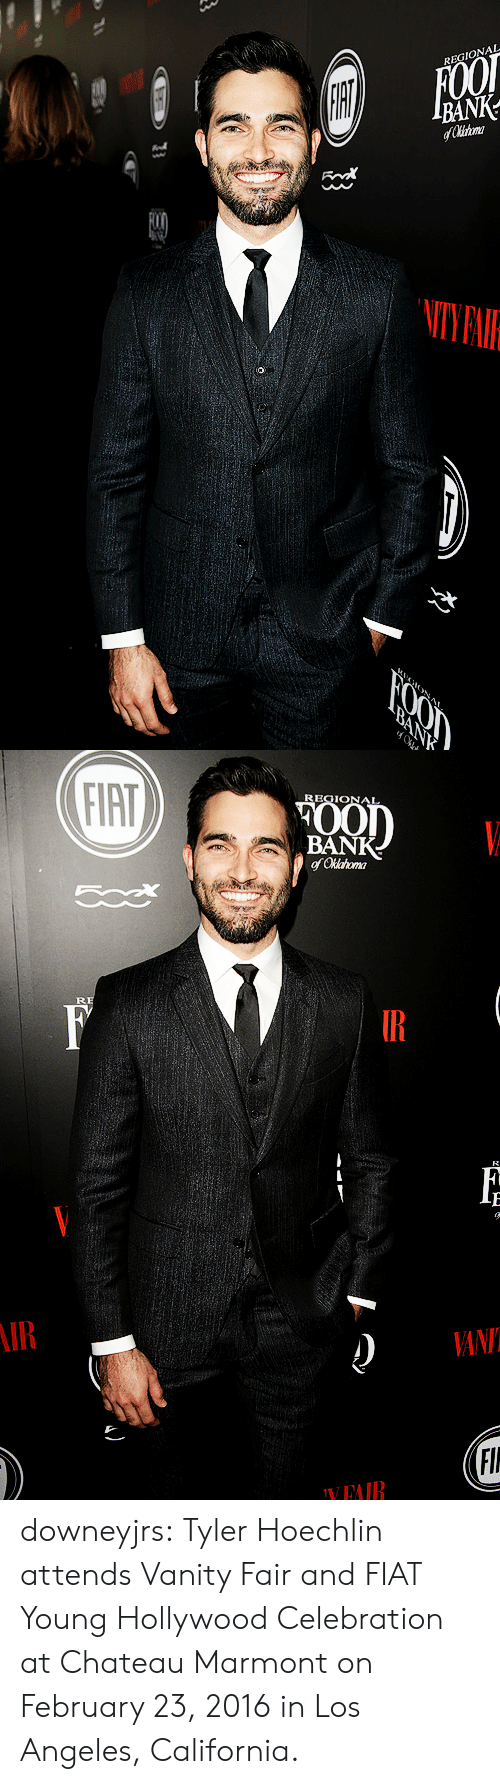 tyler hoechlin: REGIONAL  FOOT  IBANK-  fChirtom  FOOD  BANK  ONA   FIAT  REGIONAL  POOD  BANK  of Oklahoma  RE  F  IR  ИN  (FI  YEAIR  A downeyjrs:  Tyler Hoechlin attends Vanity Fair and FIAT Young Hollywood Celebration at Chateau Marmont on February 23, 2016 in Los Angeles, California.